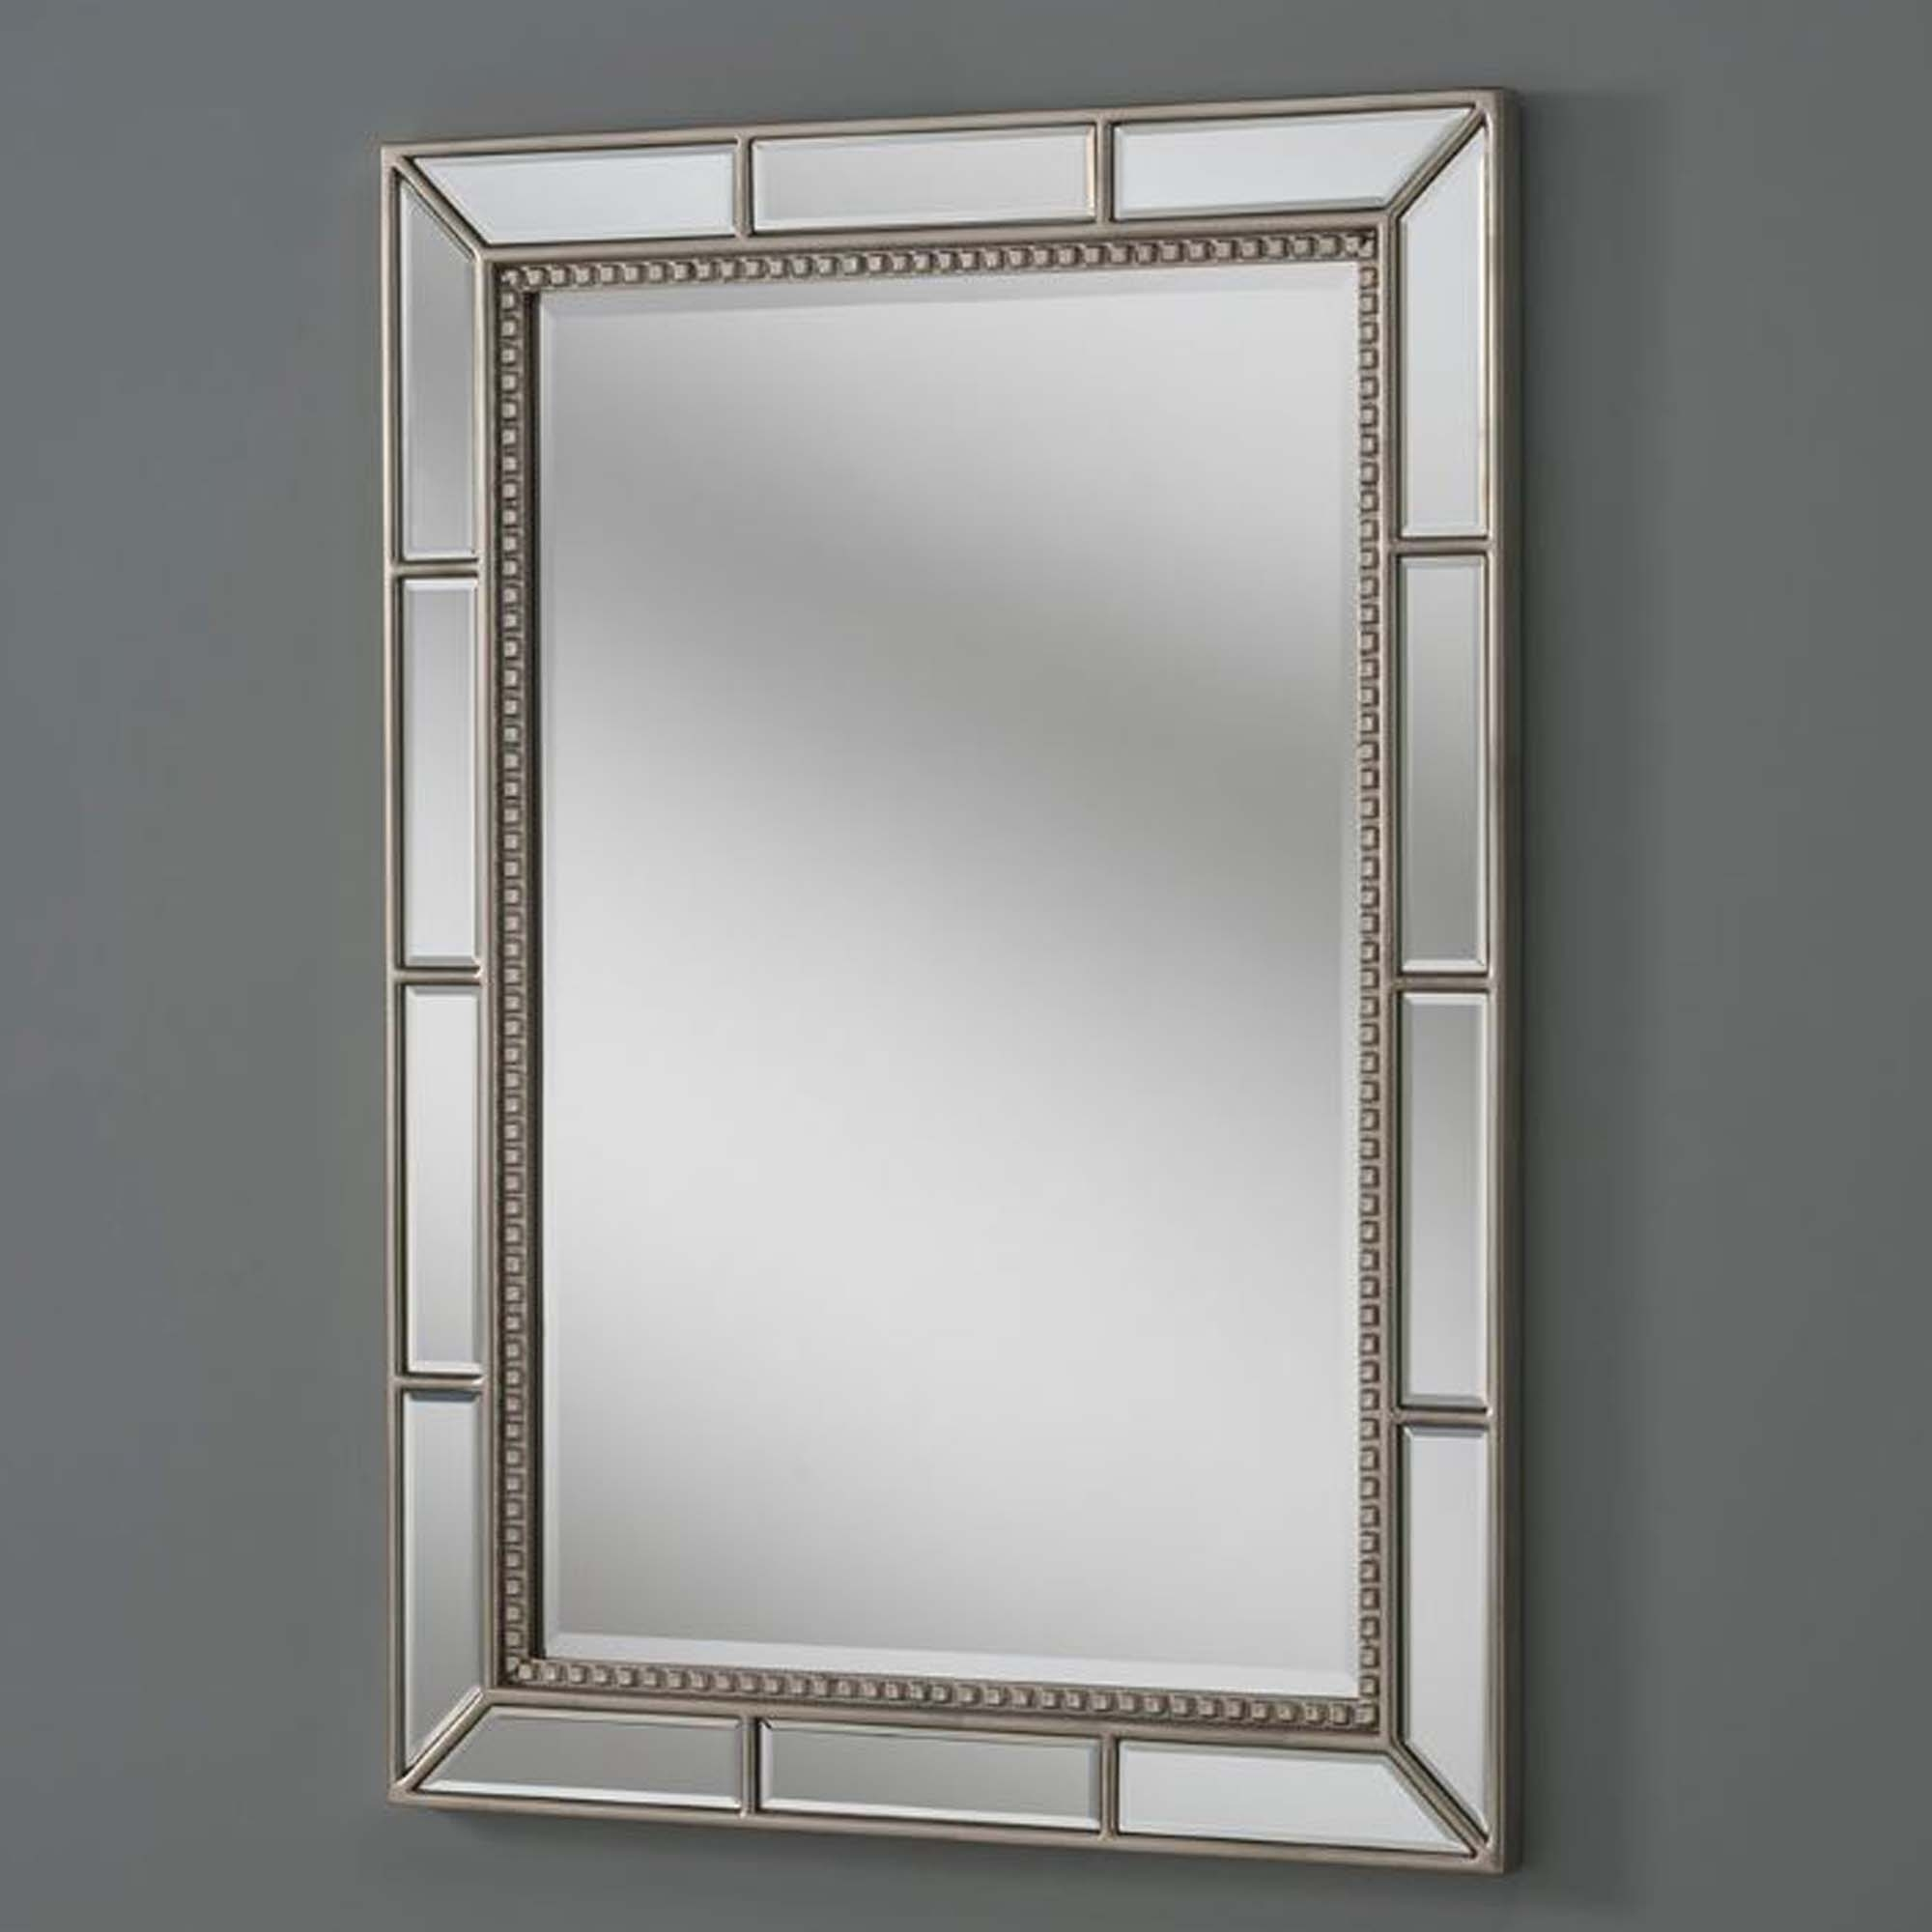 Mirrored Wall Mirror Silver Bevelled Frame | Mirrored Mirror